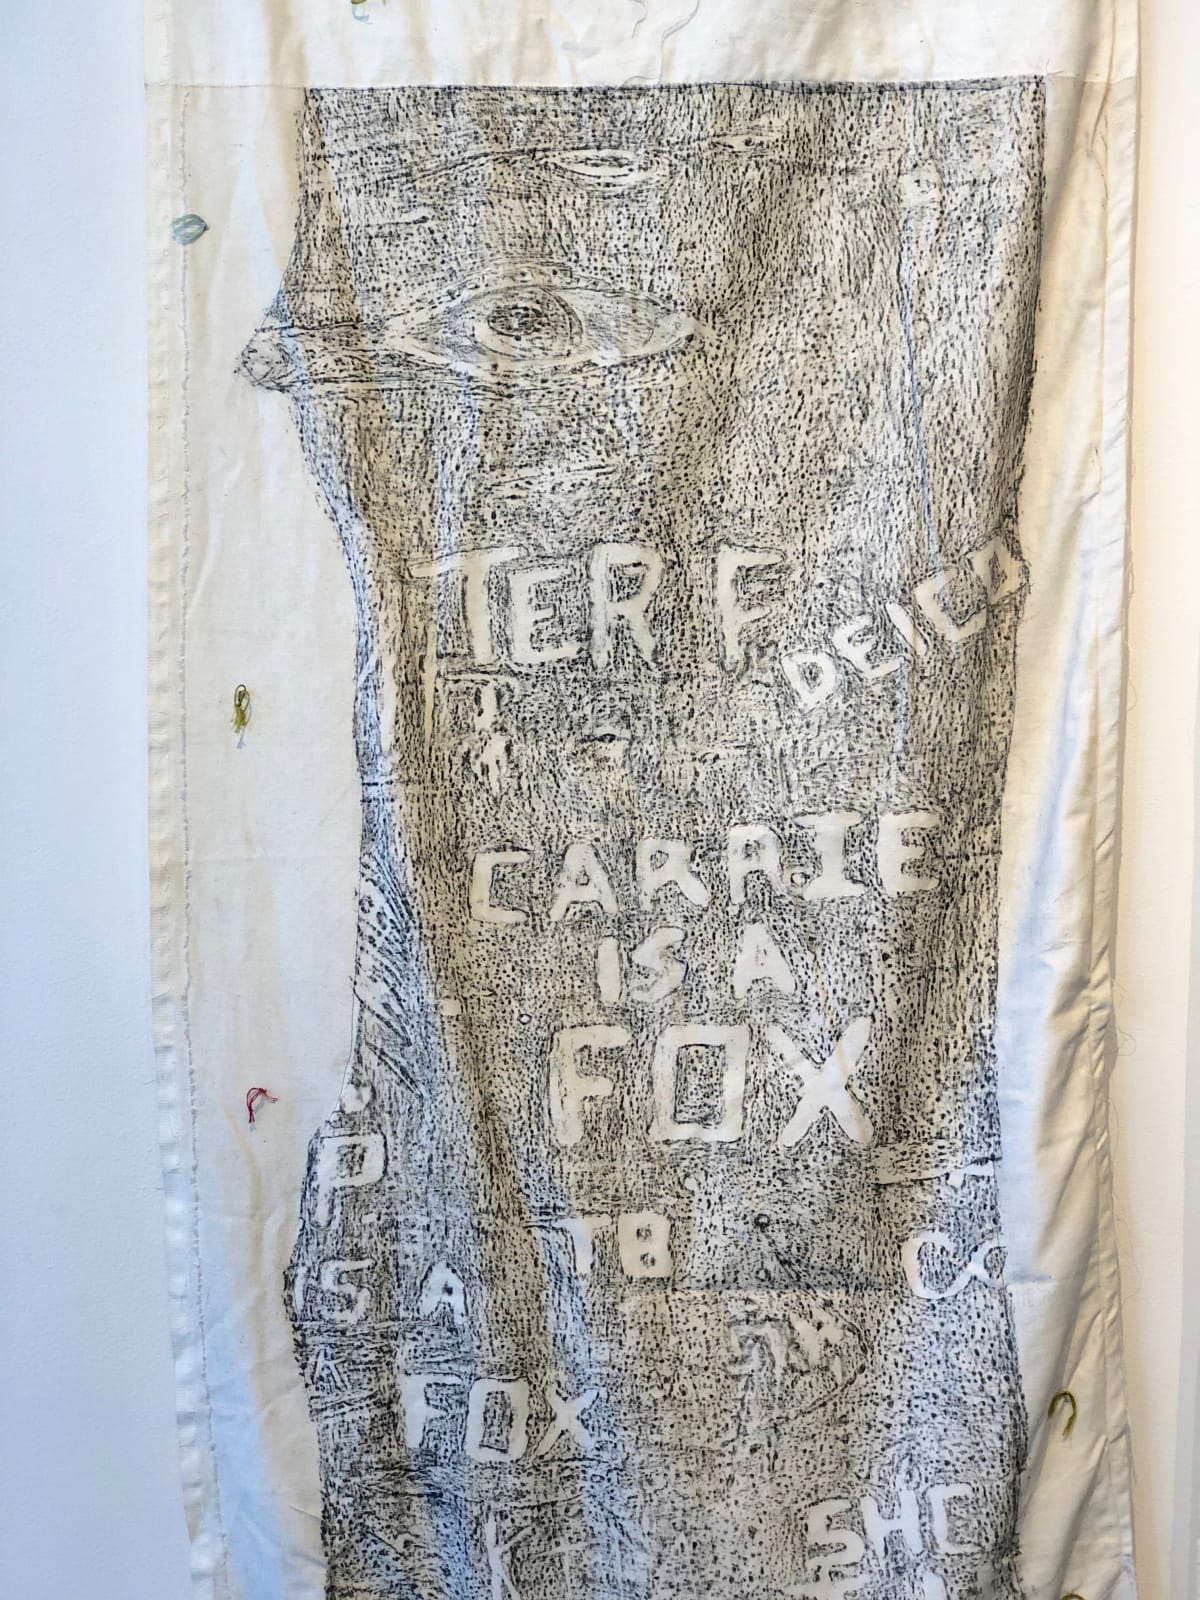 The Woods: Carrie is a Fox (detail) Katie Pell grew up in the suburbs of Wilmington Delaware in the 1970's